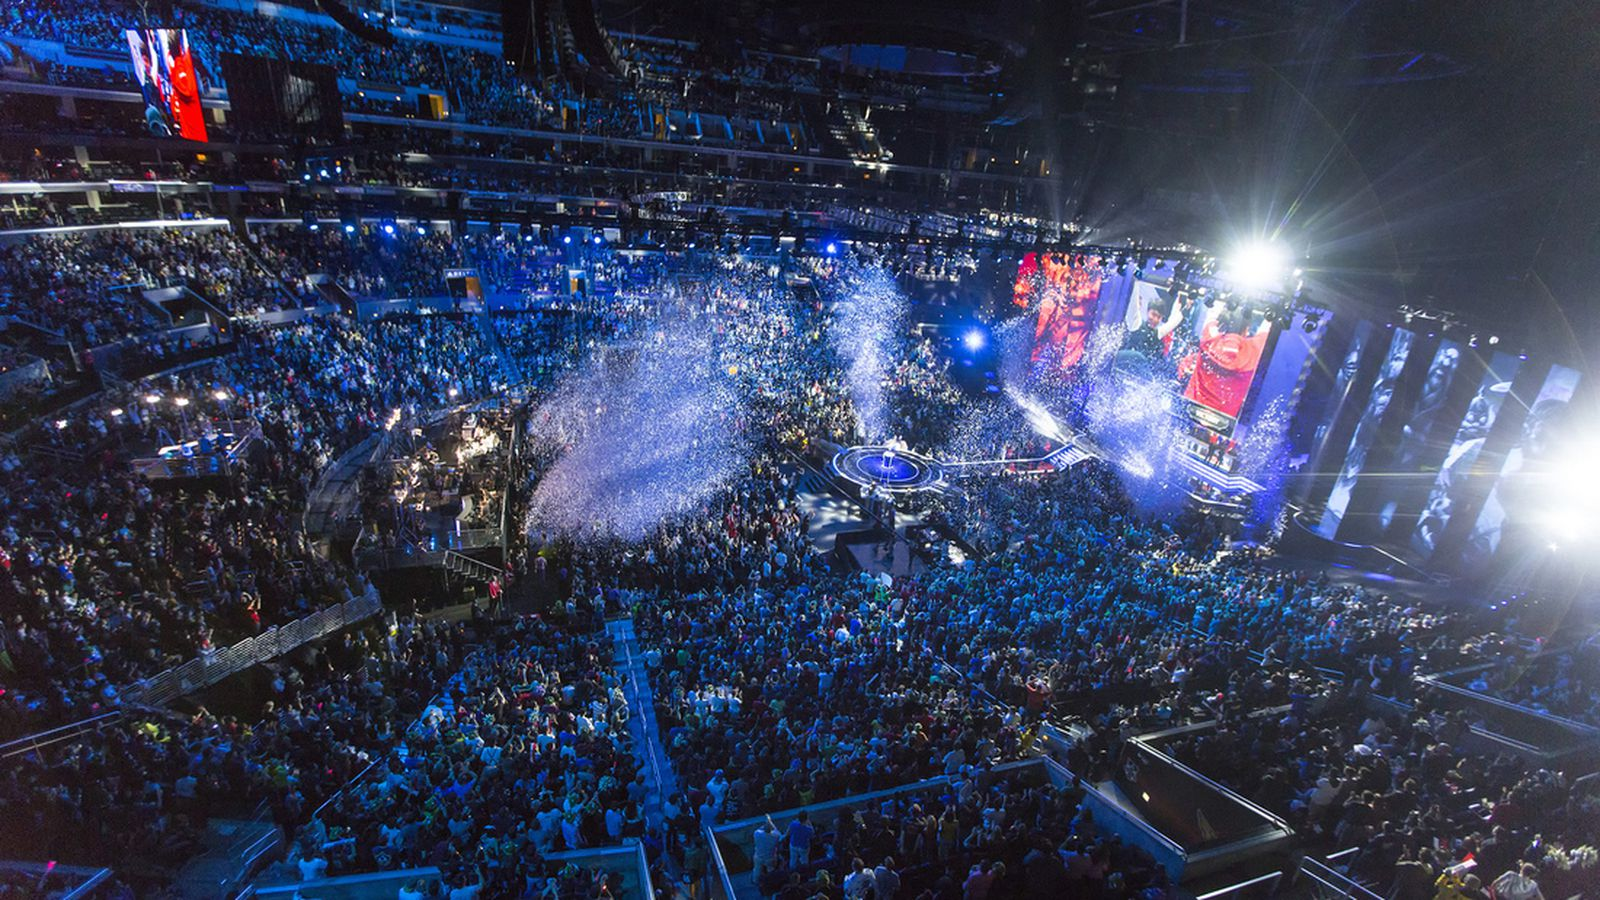 League of legends esports finals watched by 32 million people the